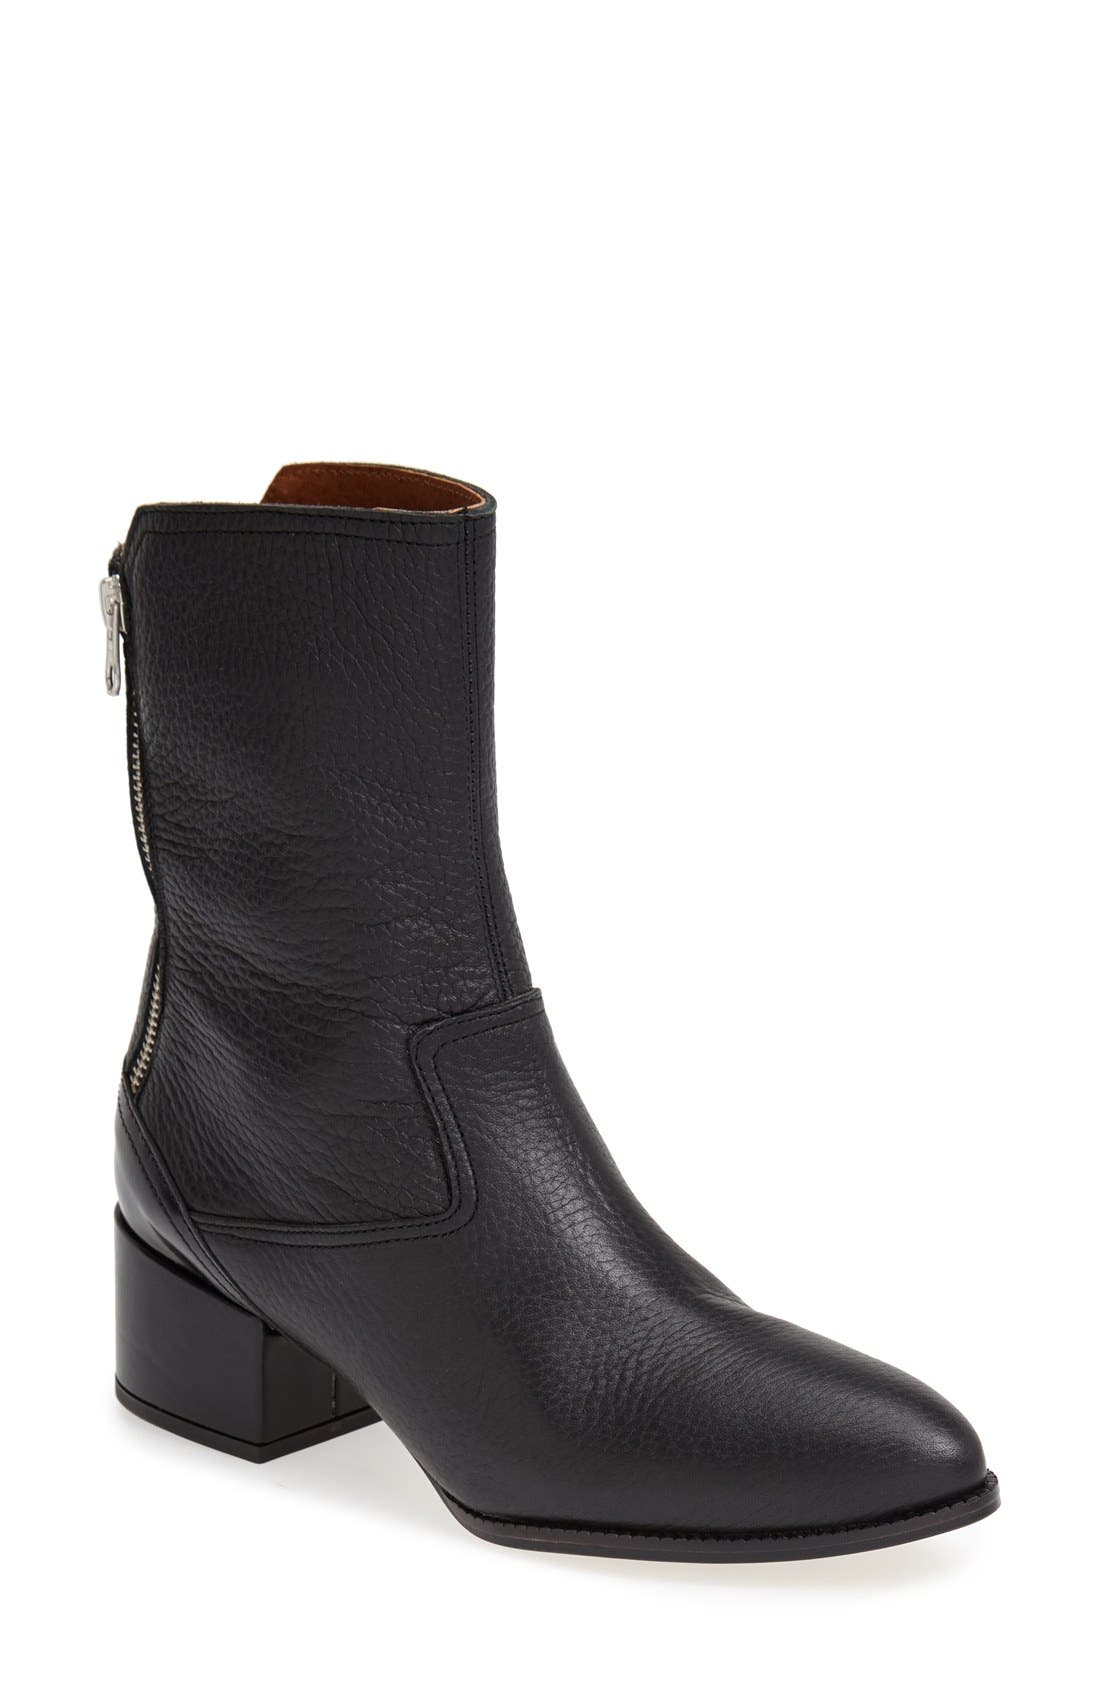 Alternate Image 1 Selected - SIXTYSEVEN 'Alana' Mid Boot (Women)